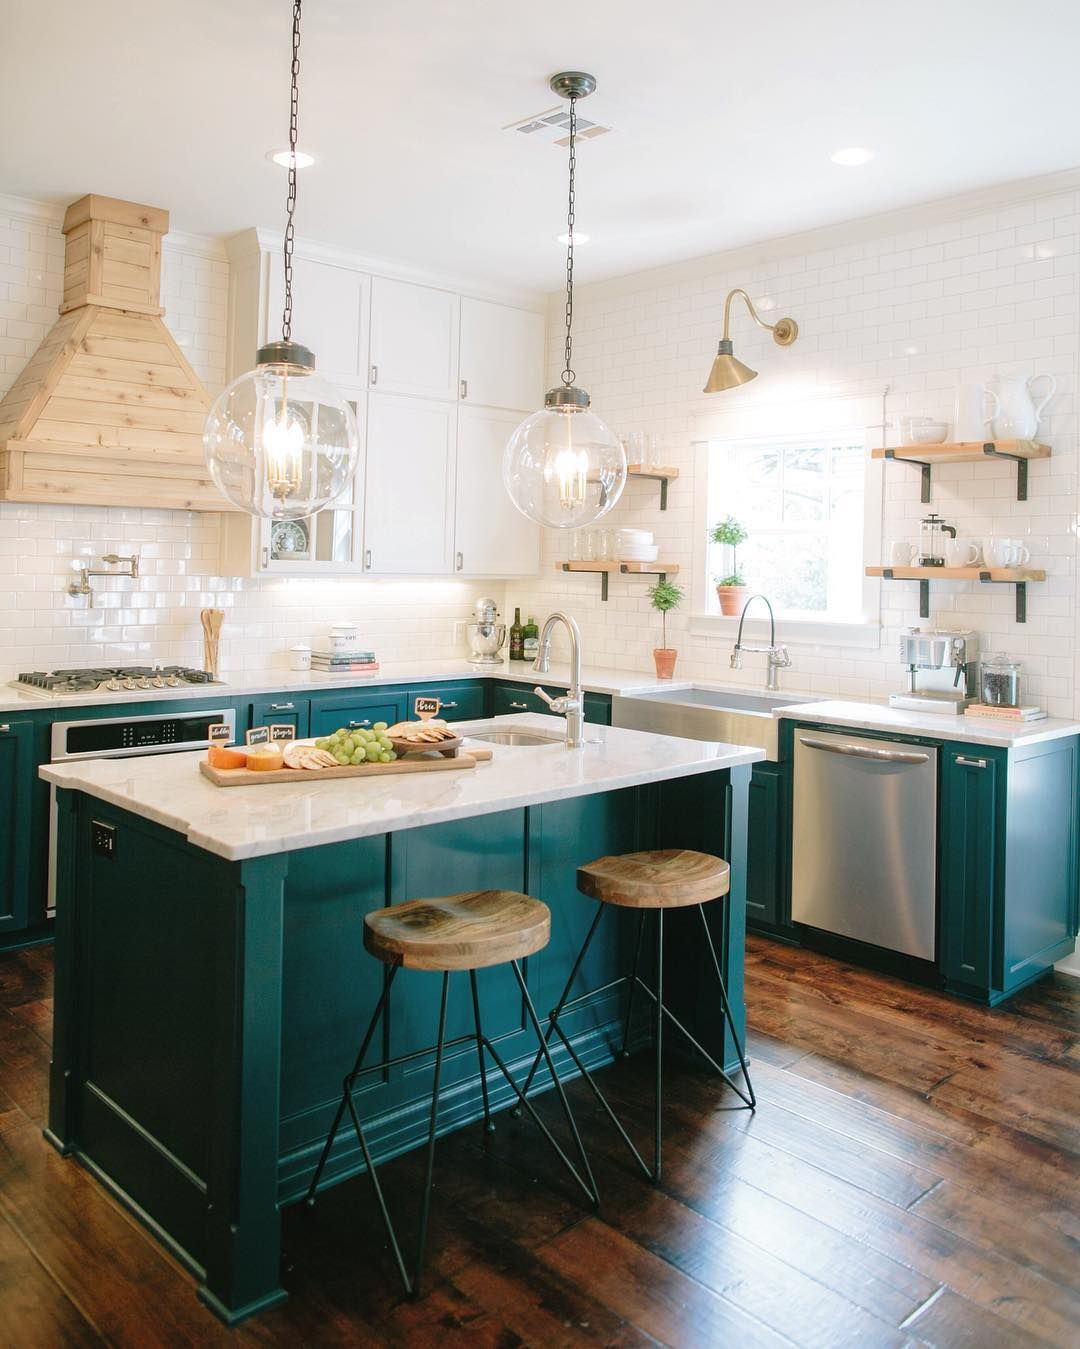 Teal Kitchen Decorating Ideas The One Color Designers Are Starting To Paint Their